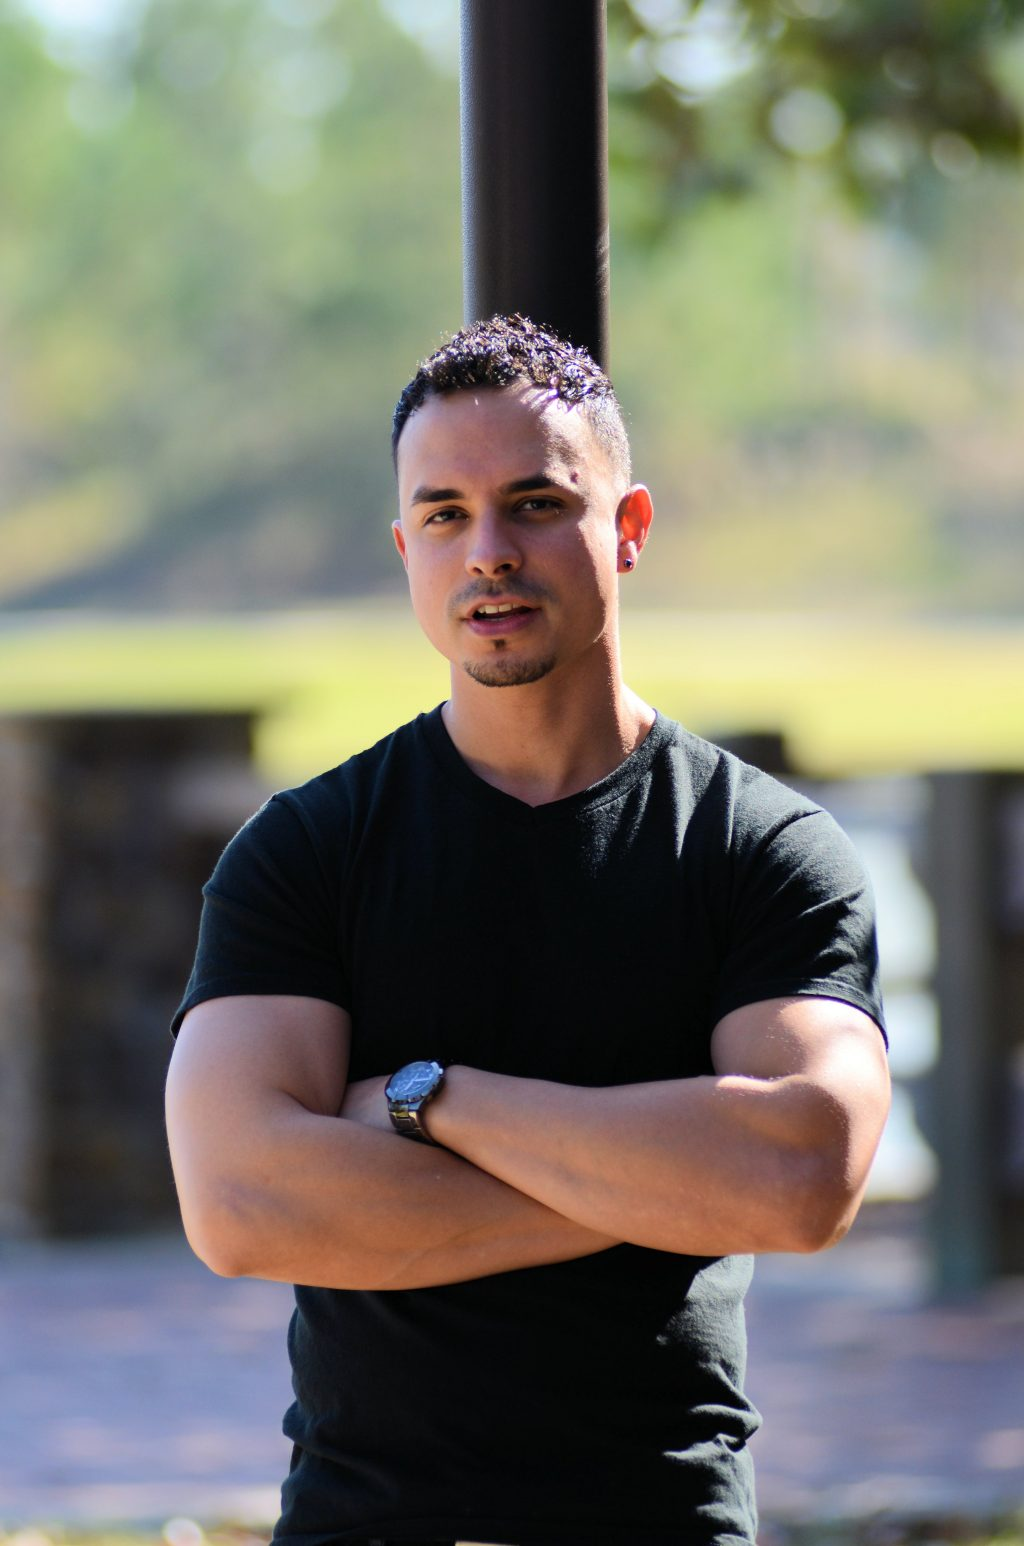 Personal Trainer Houston, Texas - Juan Nunez